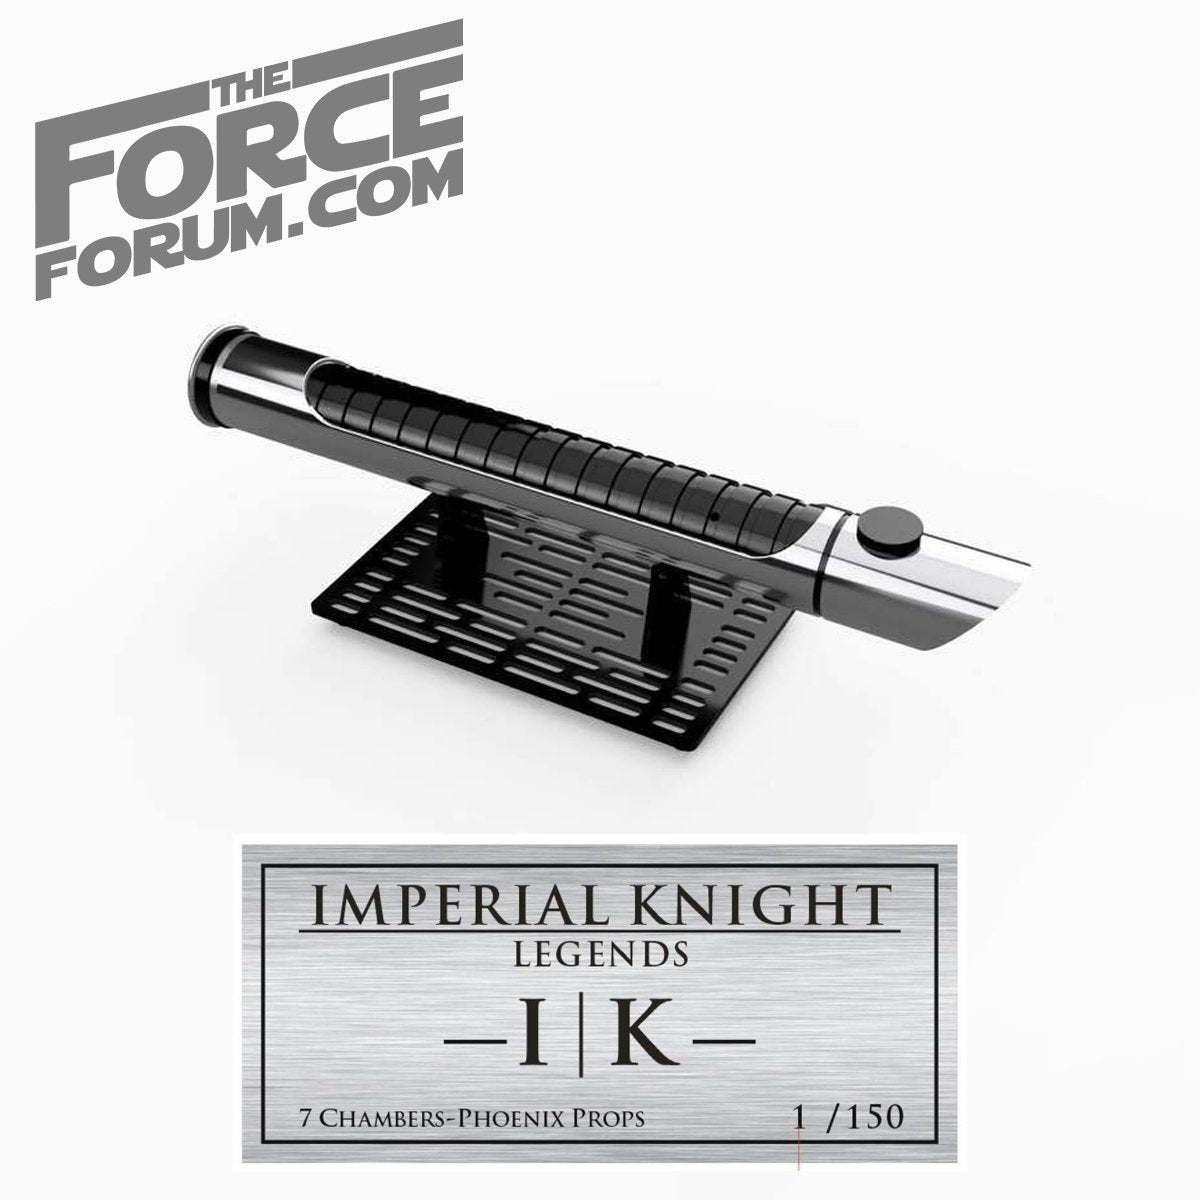 Imperial Knight Saber Hilt